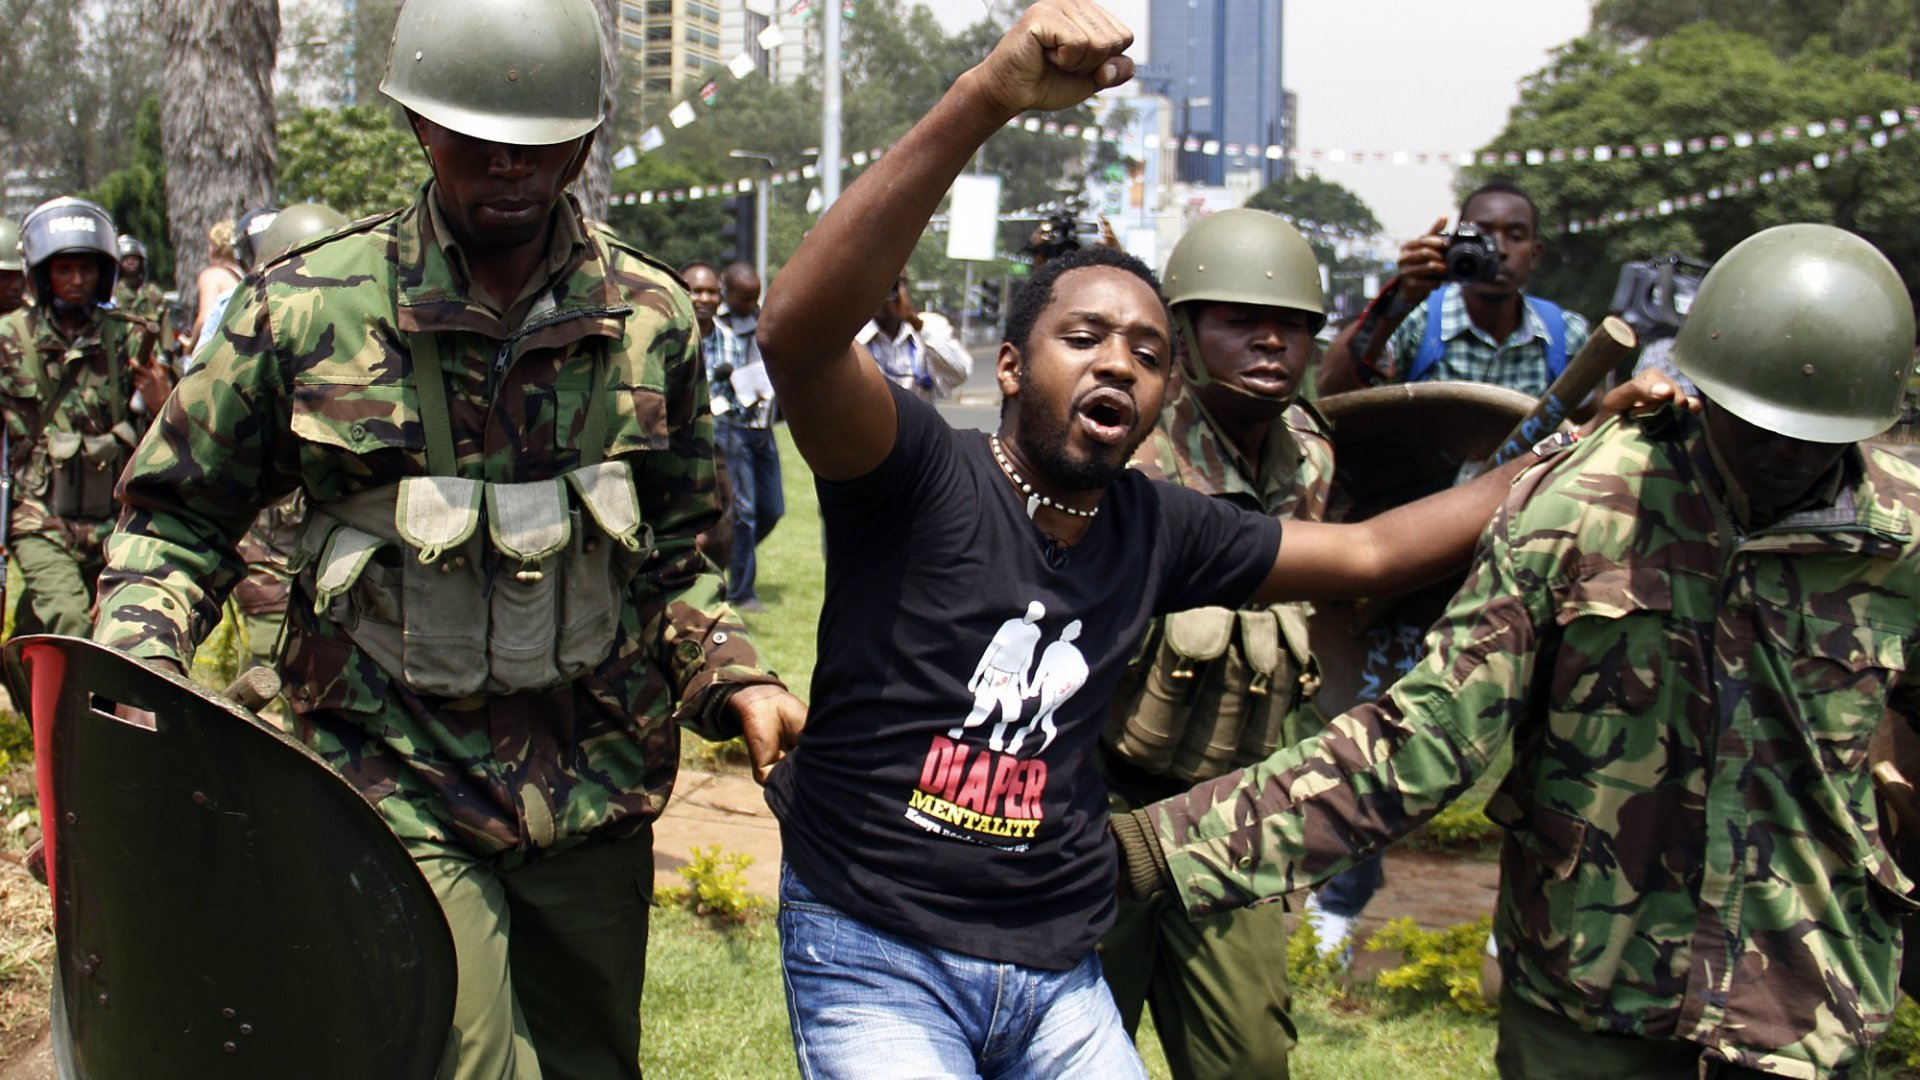 Kenyan activist Boniface Mwangi is arrested during a protest in Nairobi on February 13, 2014. The demonstration entitled 'State of the Nation' was held to protest against rising cases of corruption in the government, lack of safety in public places, high unemployment, and poverty.